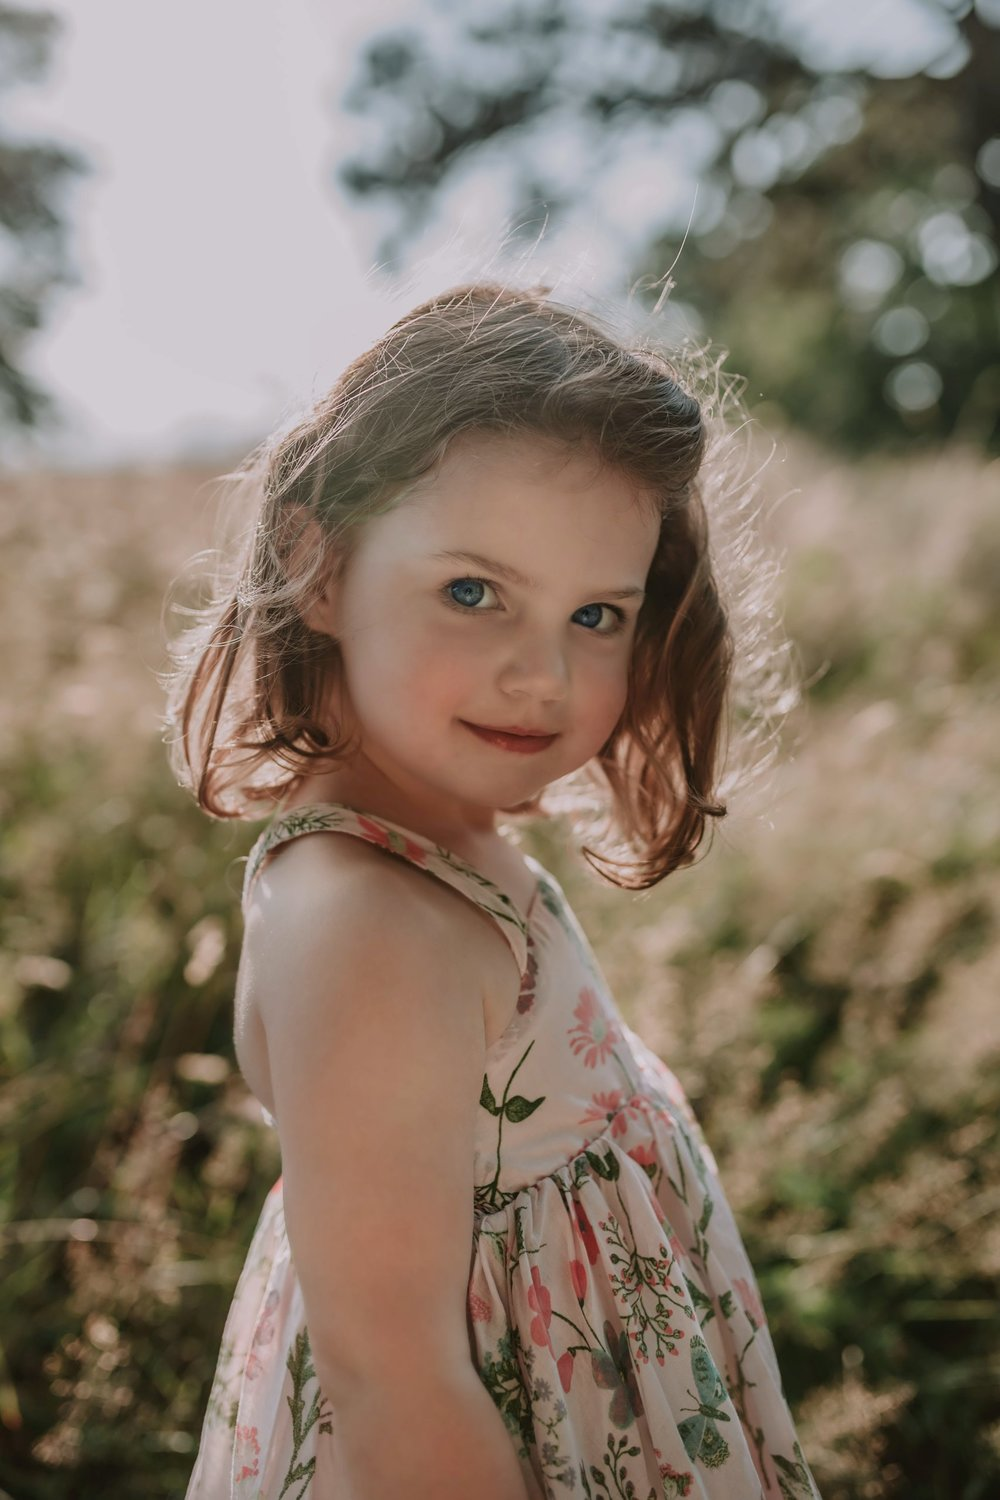 Summers_August_2018-52_Beautiful_Natural_Portraits_by_Award_Winning_Boston_Massachusetts_Family_Portrait_Photographer_Asher_and_Oak_Photography.jpg